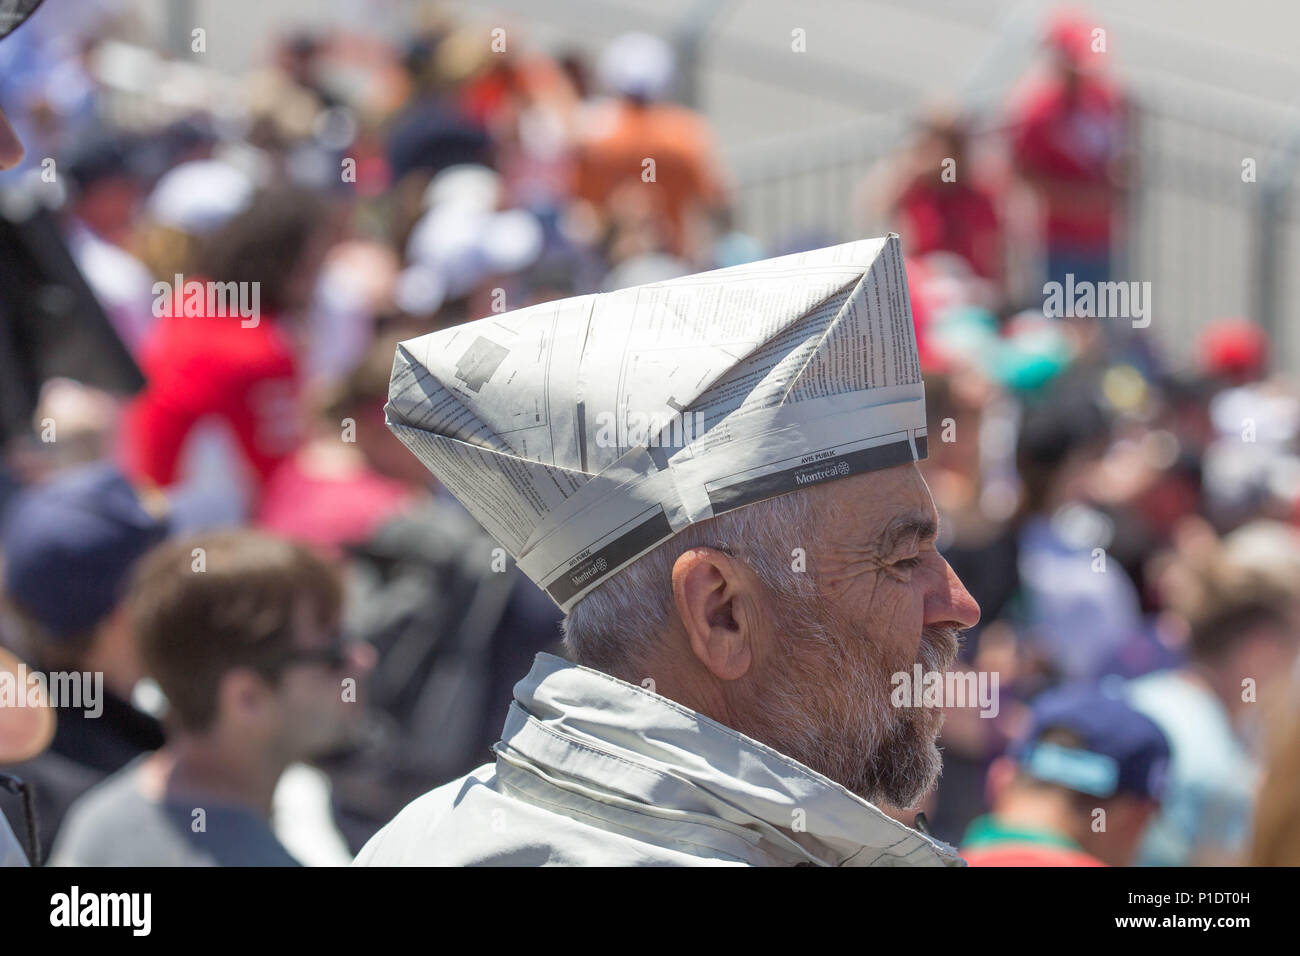 Old man in a crowd with a newspaper sailor hat Stock Photo